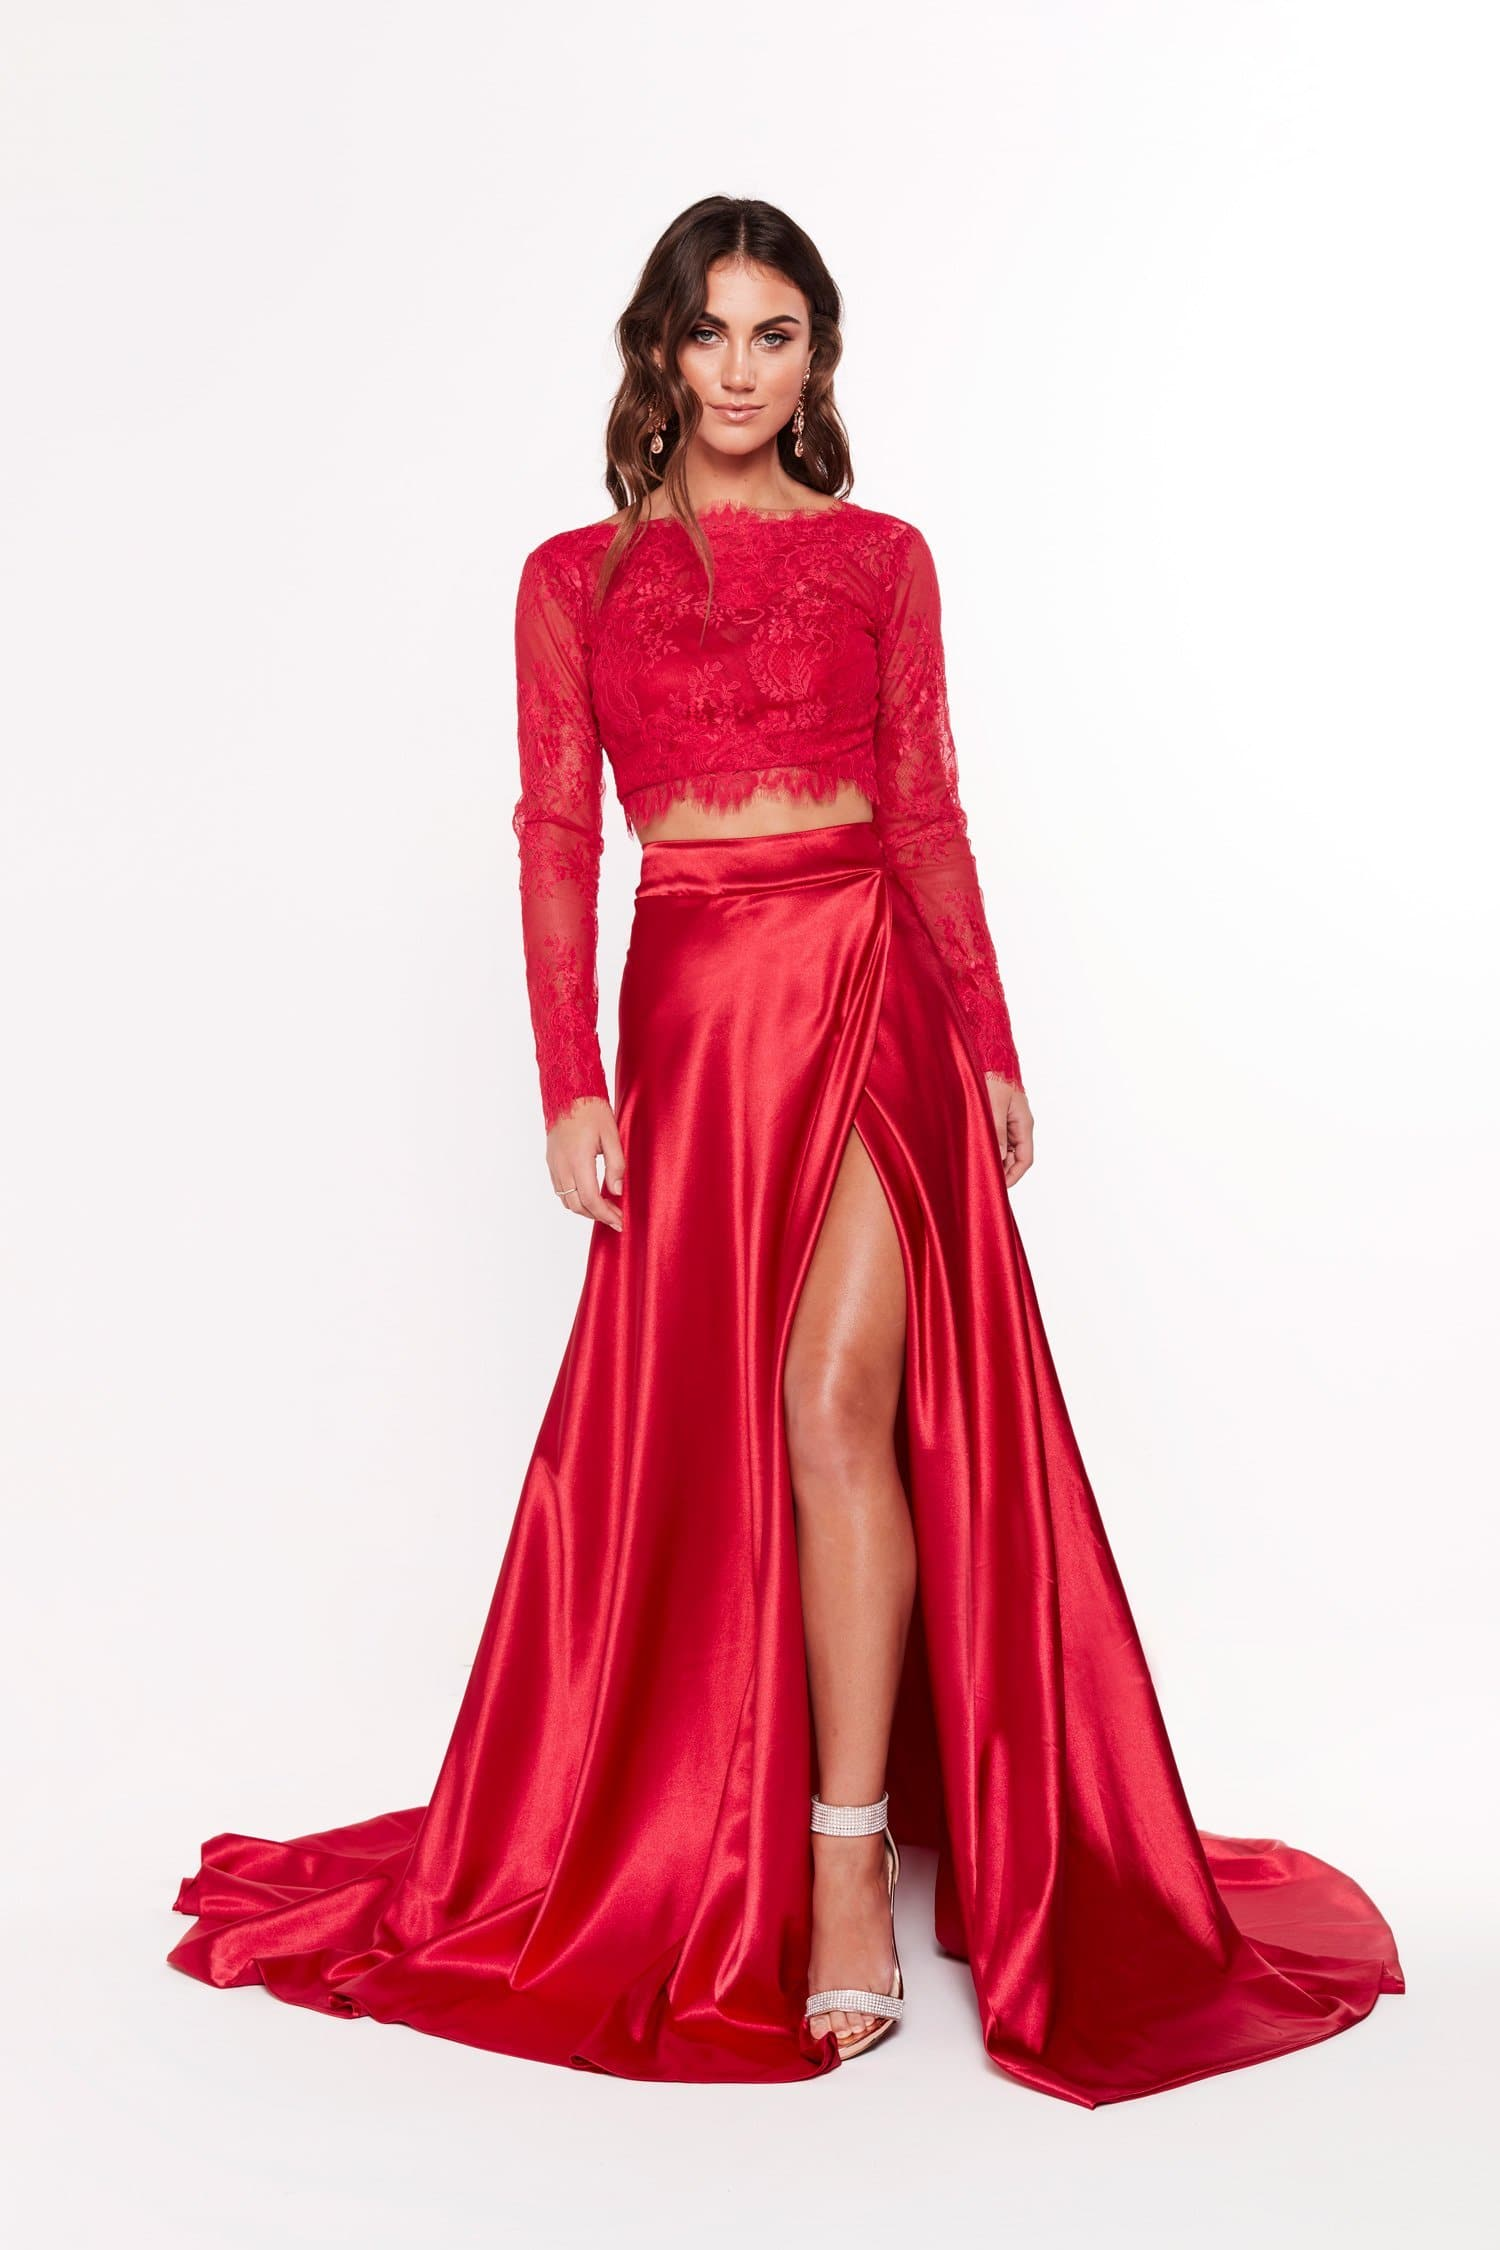 A&N Katerina - Red Lace Satin Two Piece Formal Gown with Side Slit